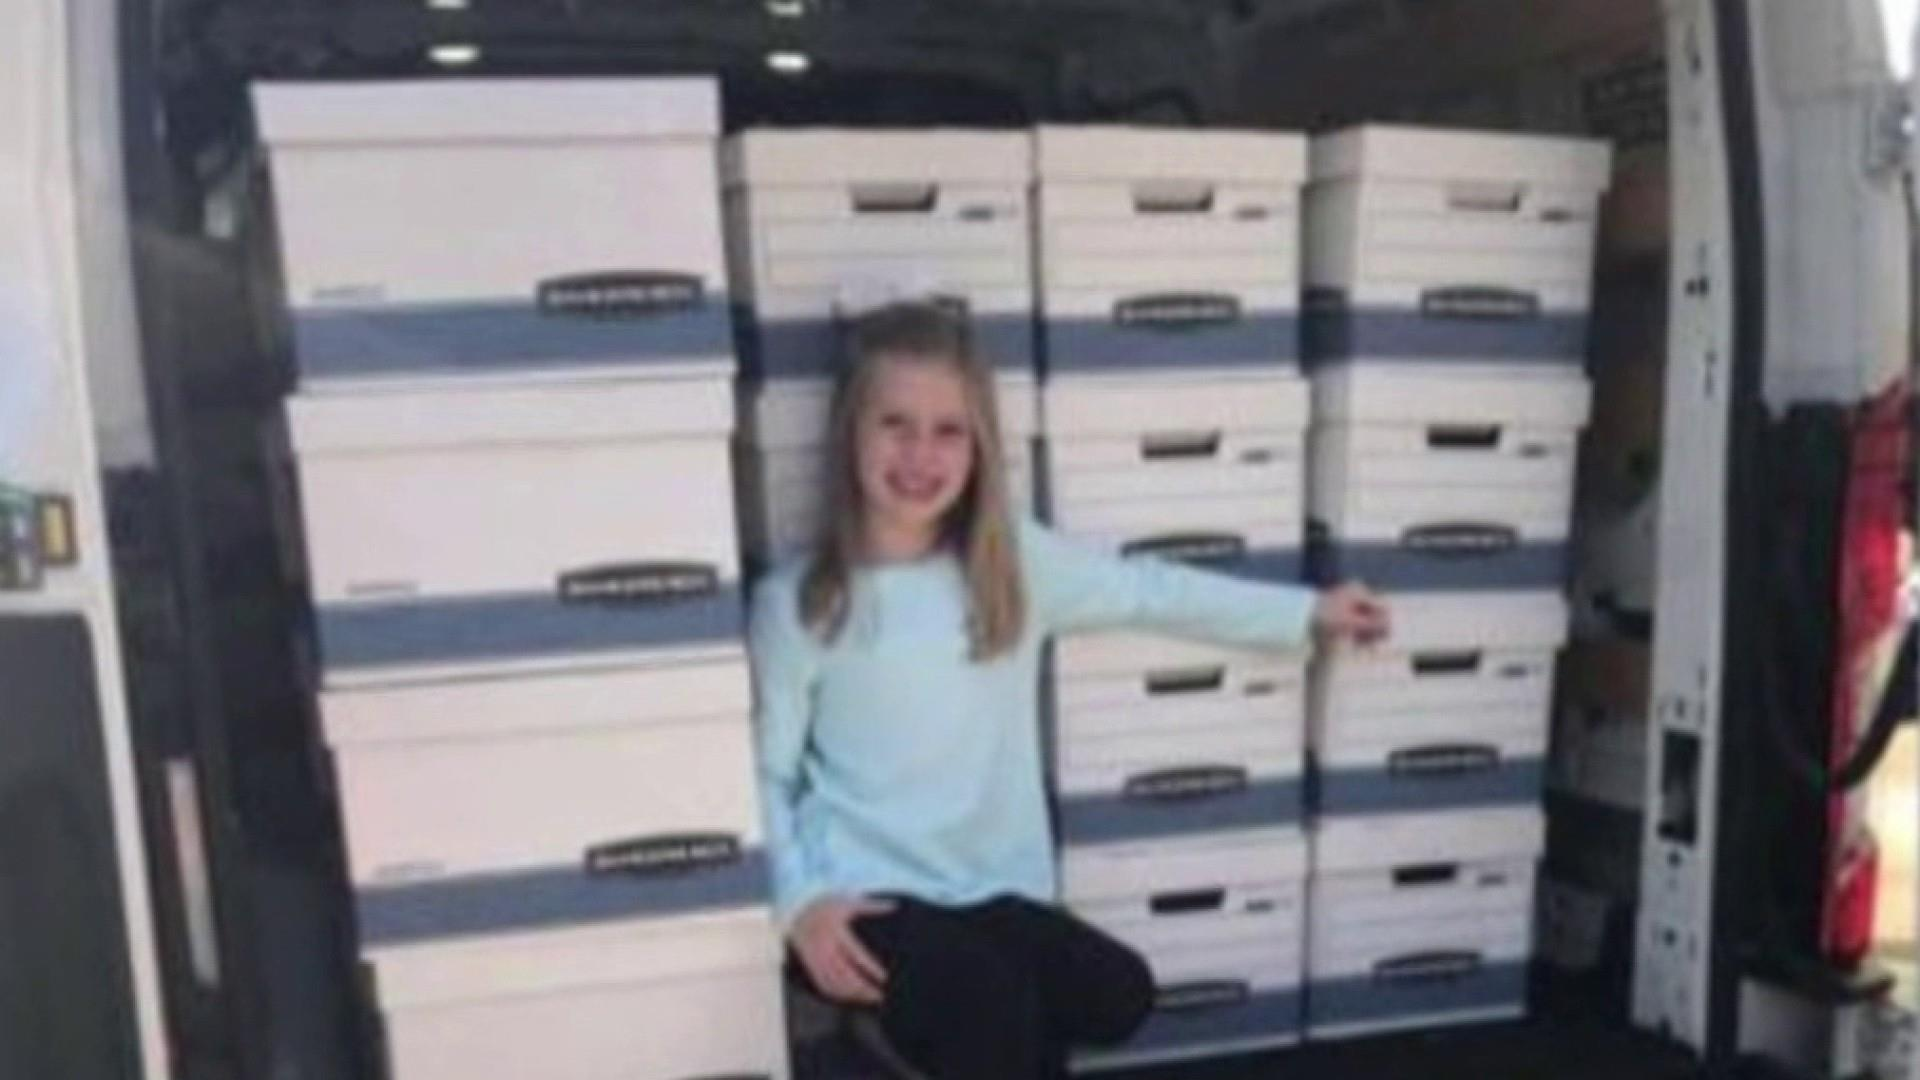 #GoodNewsRUHLES: 9-year-old buys 100+ Thanksgiving dinners for people in need